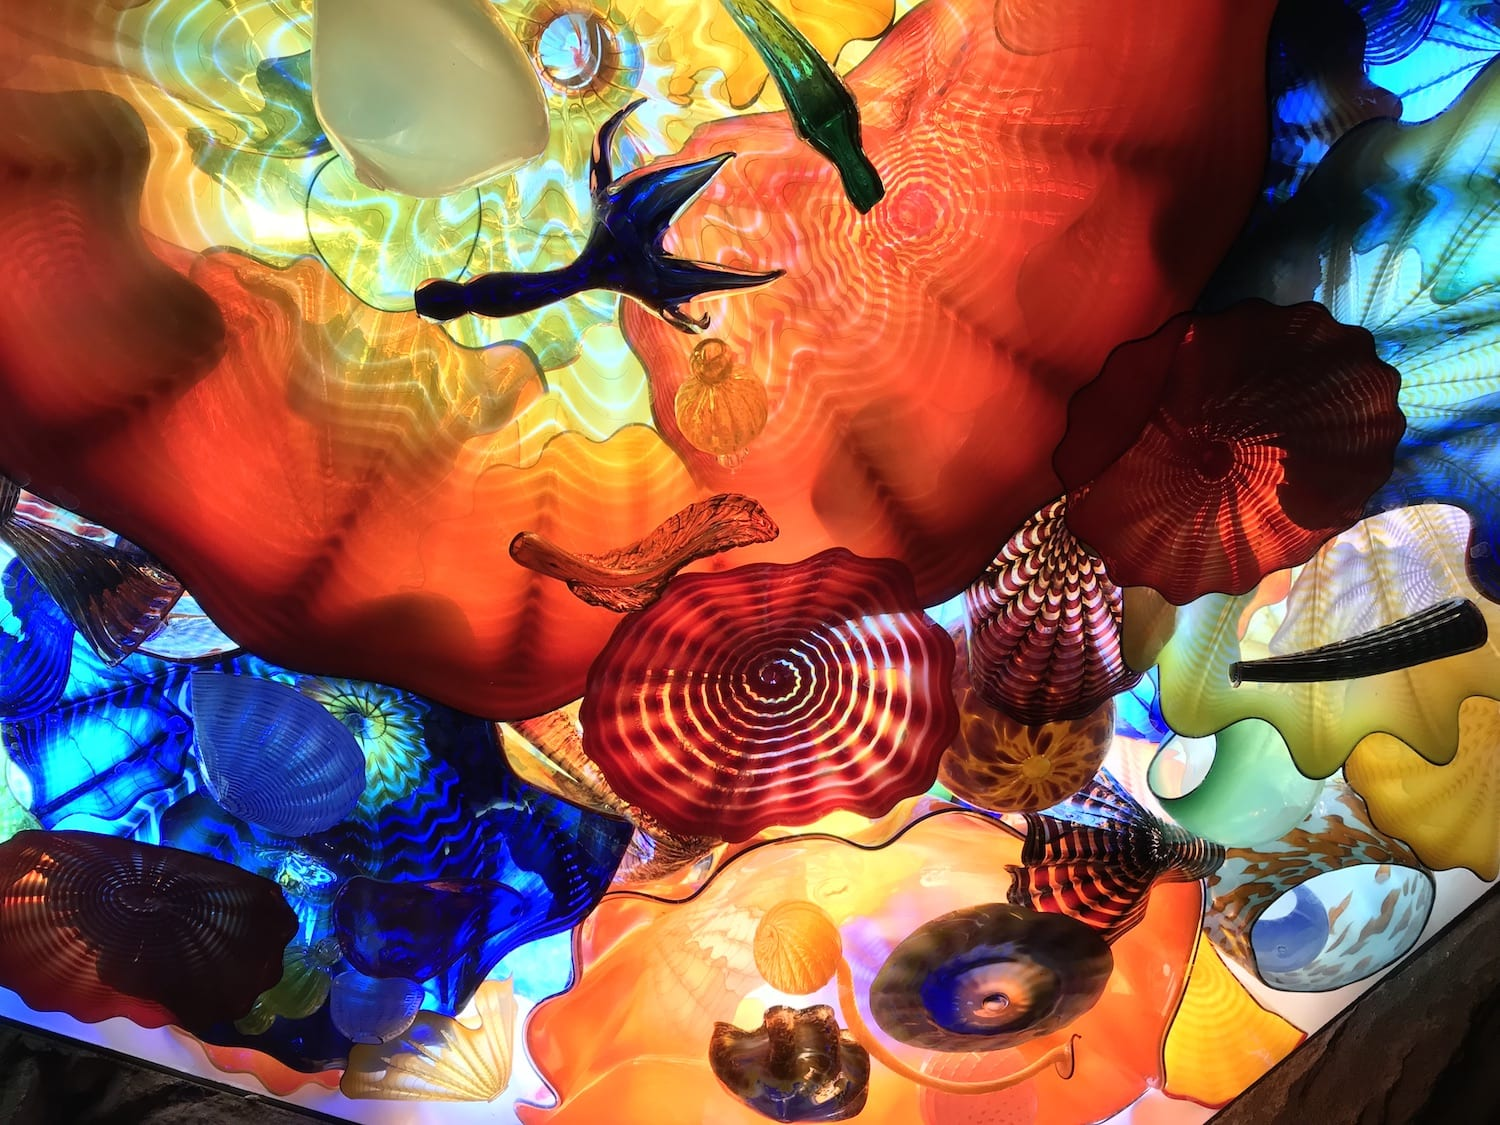 Dale Chihuly at Franklin Park Conservatory in Columbus Ohio